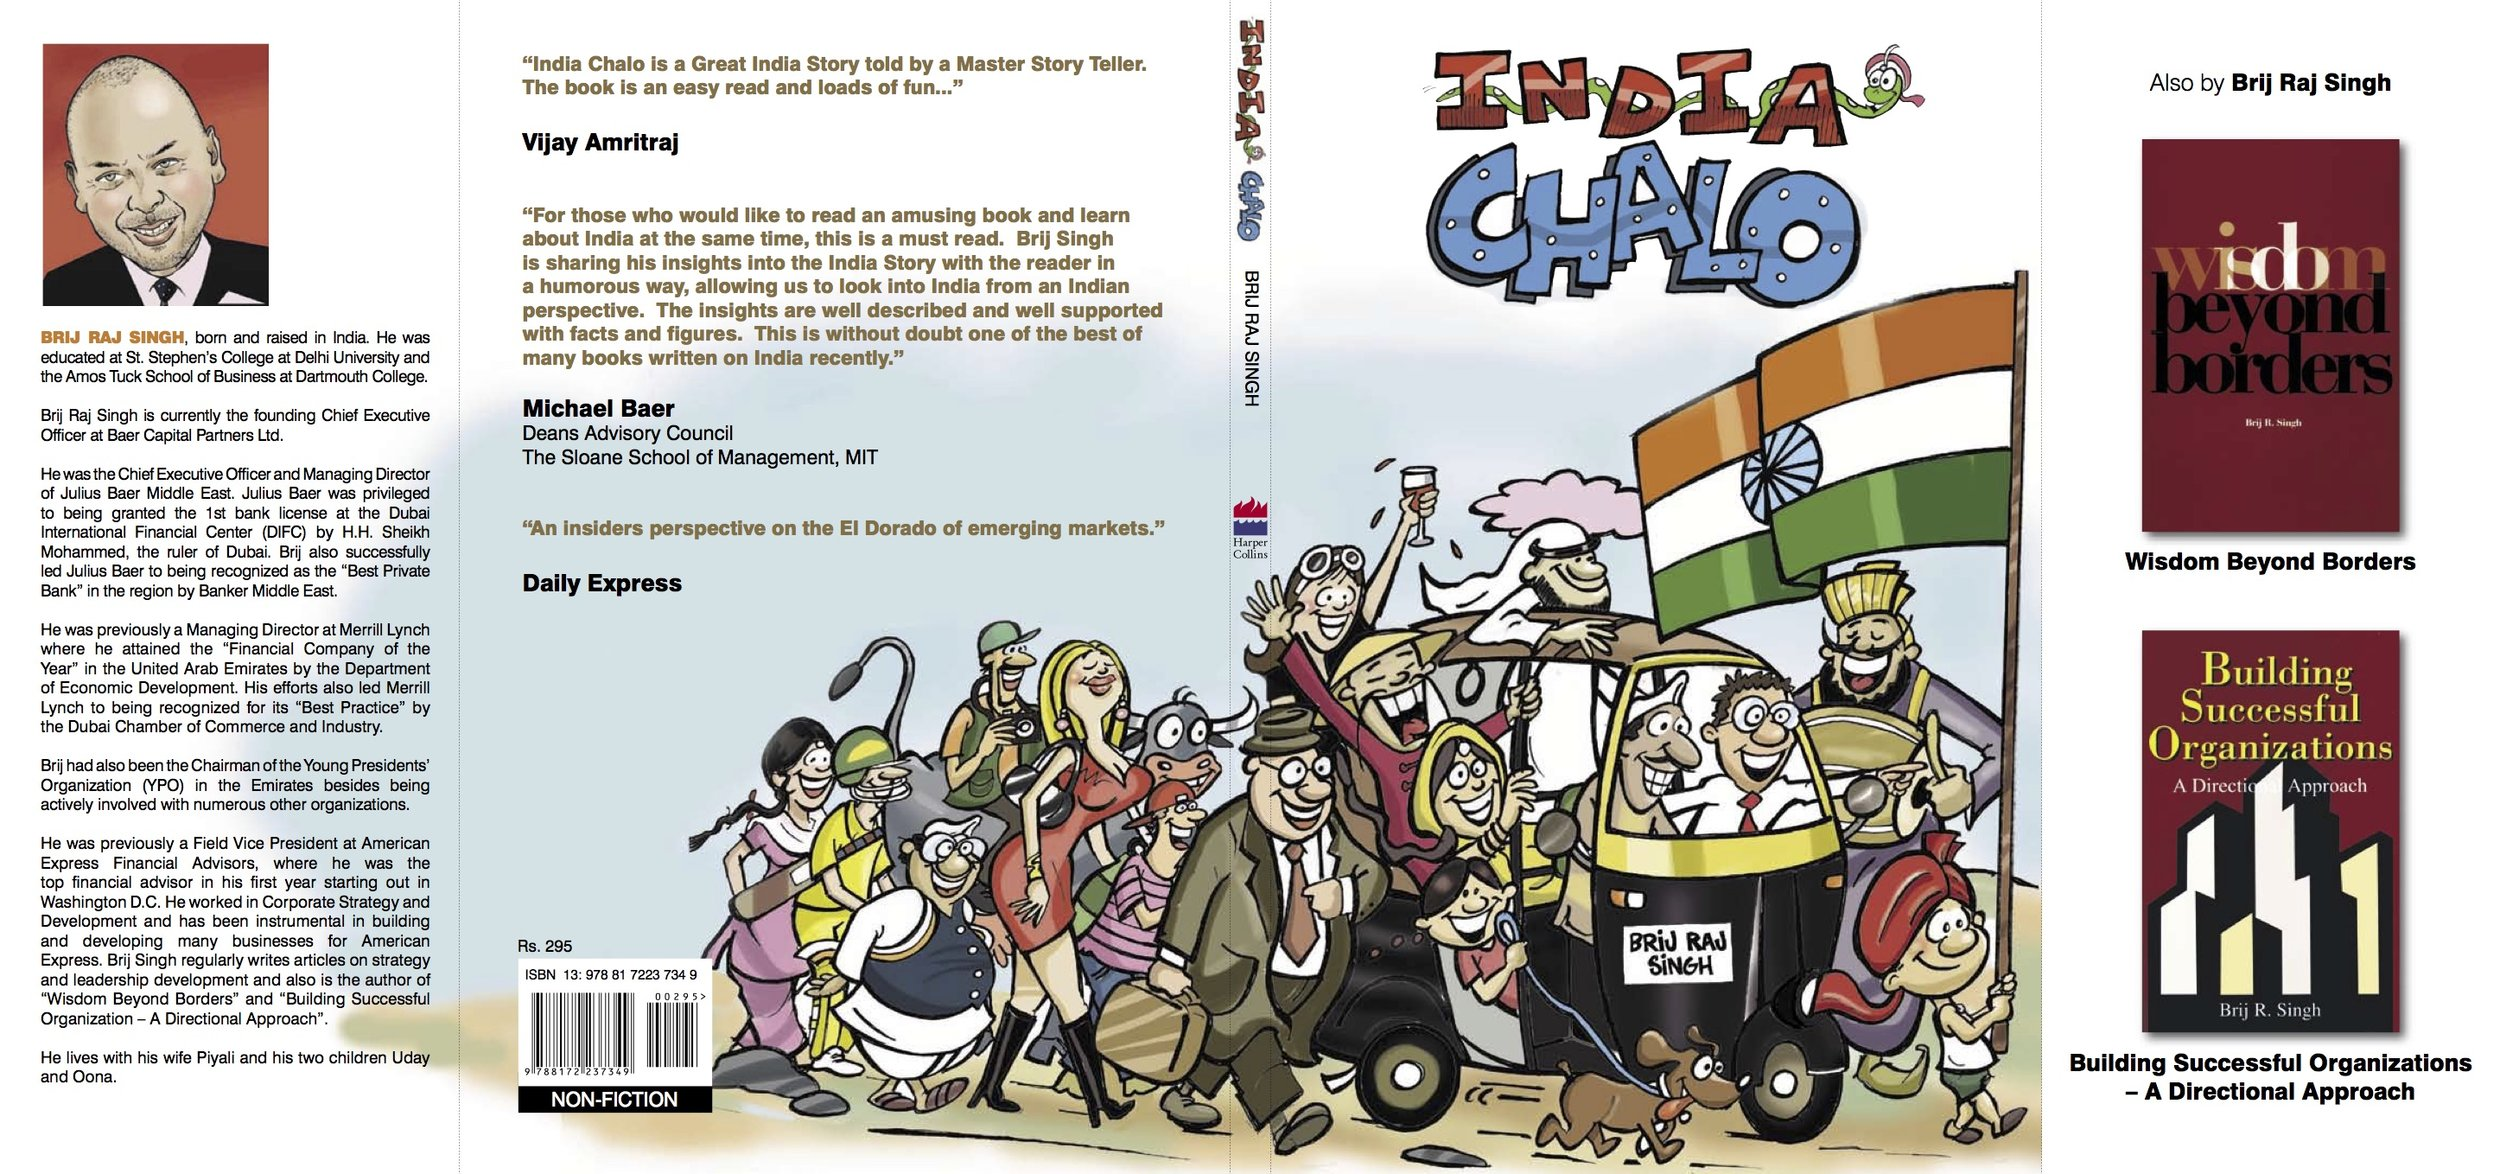 chalo_cover.jpg